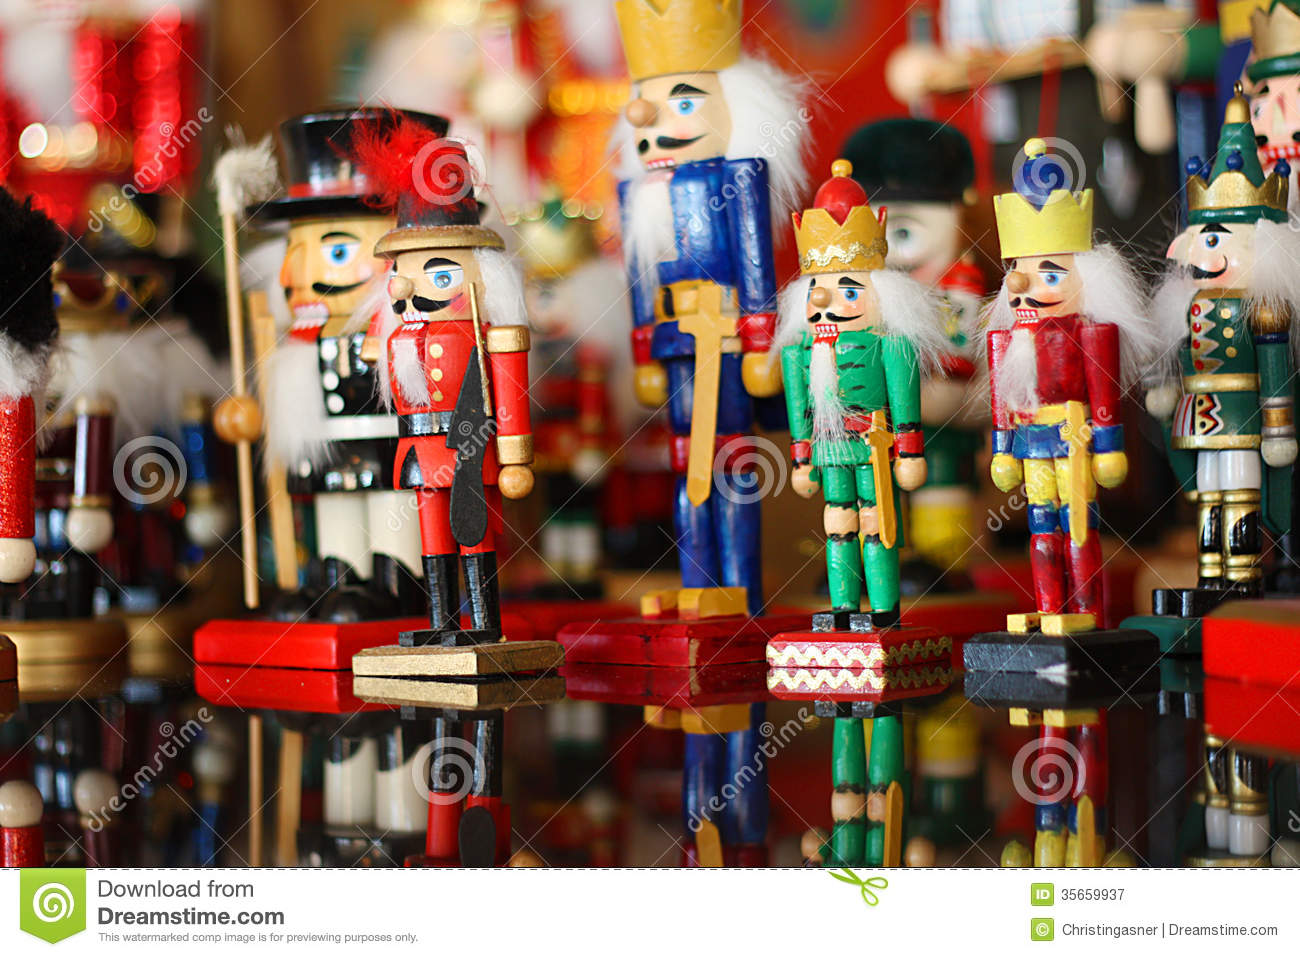 Collection of Christmas Nutcrackers